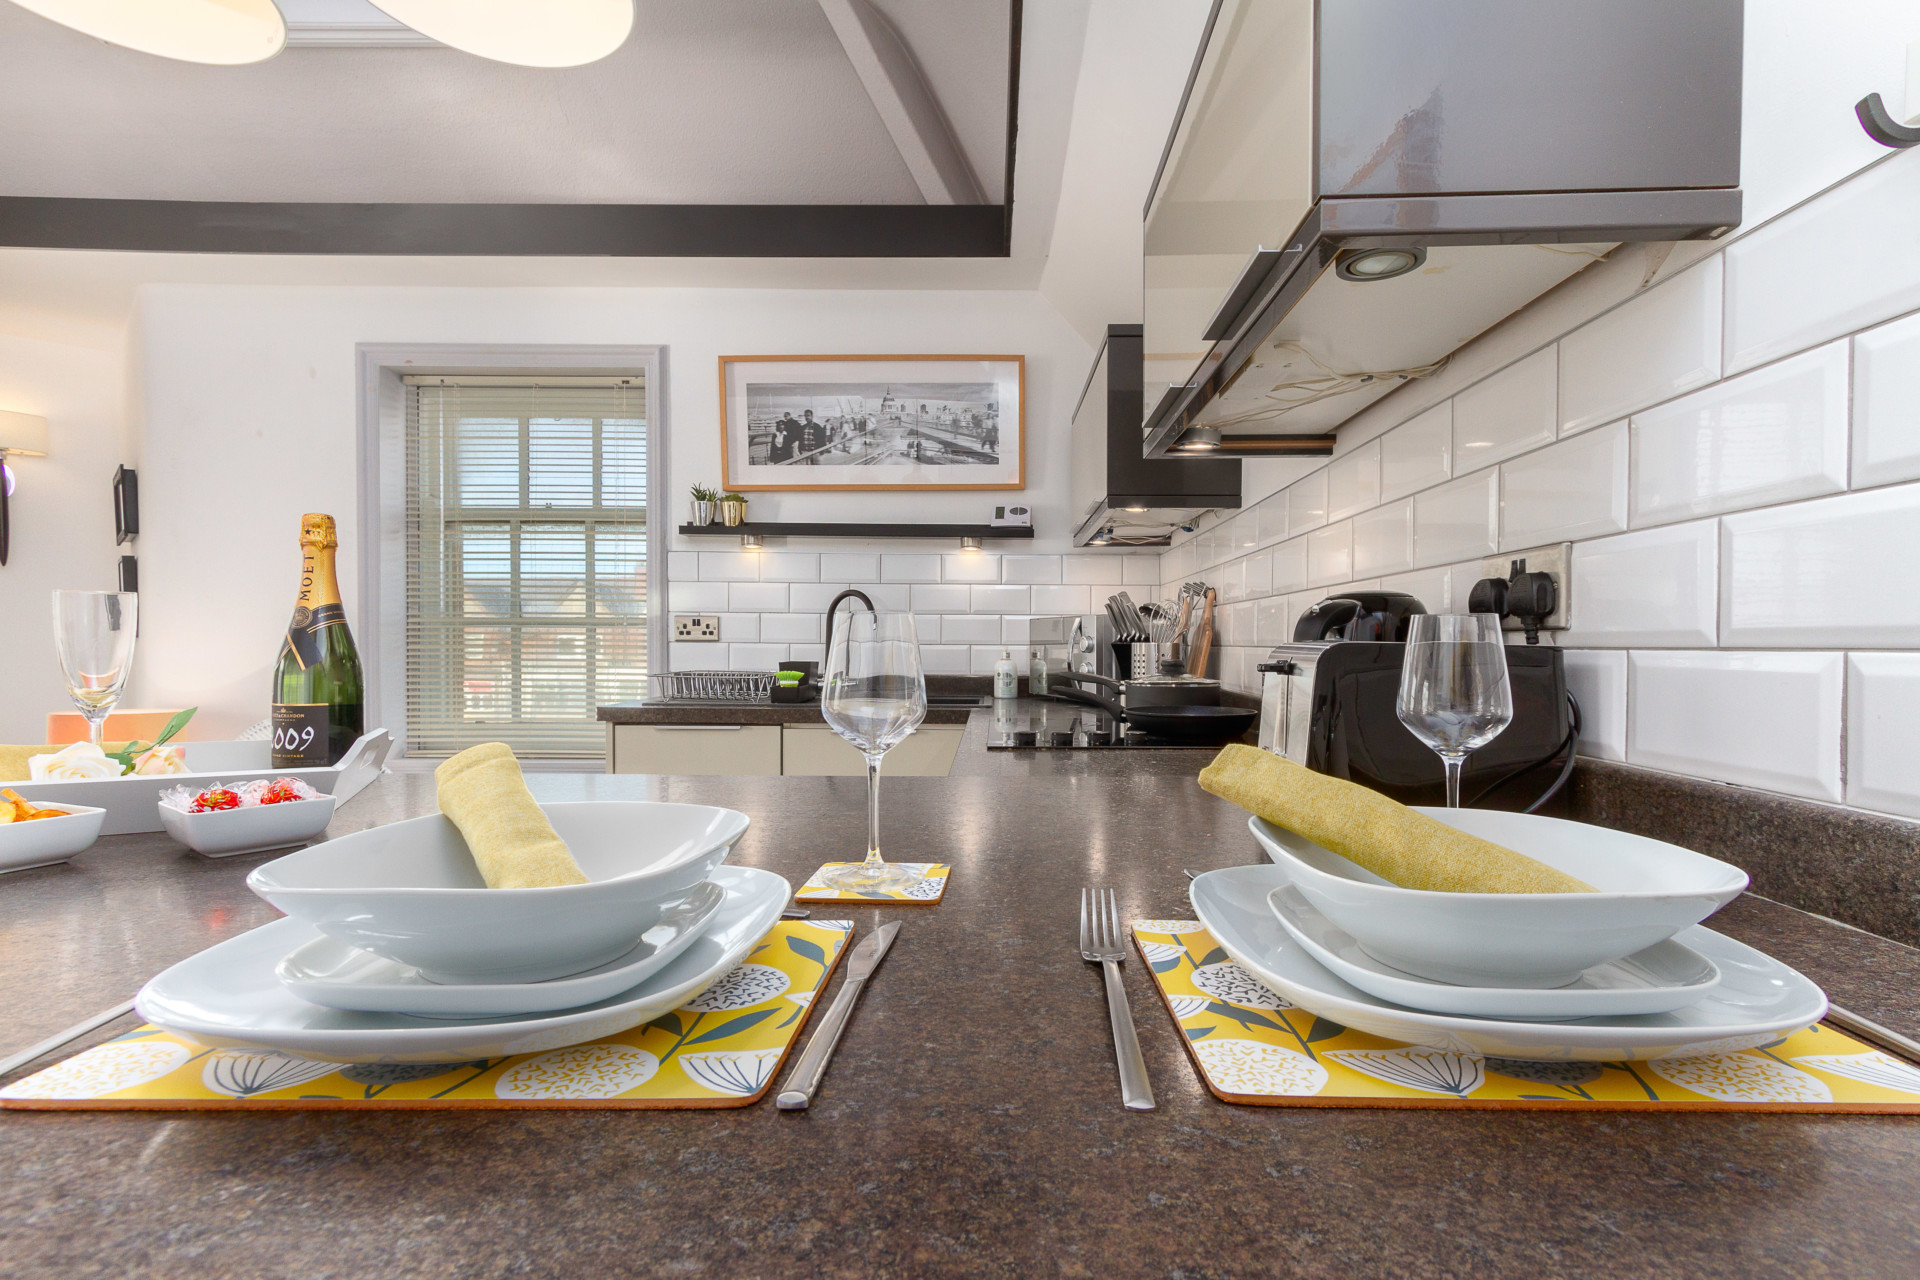 Breakfast bar with seating for two